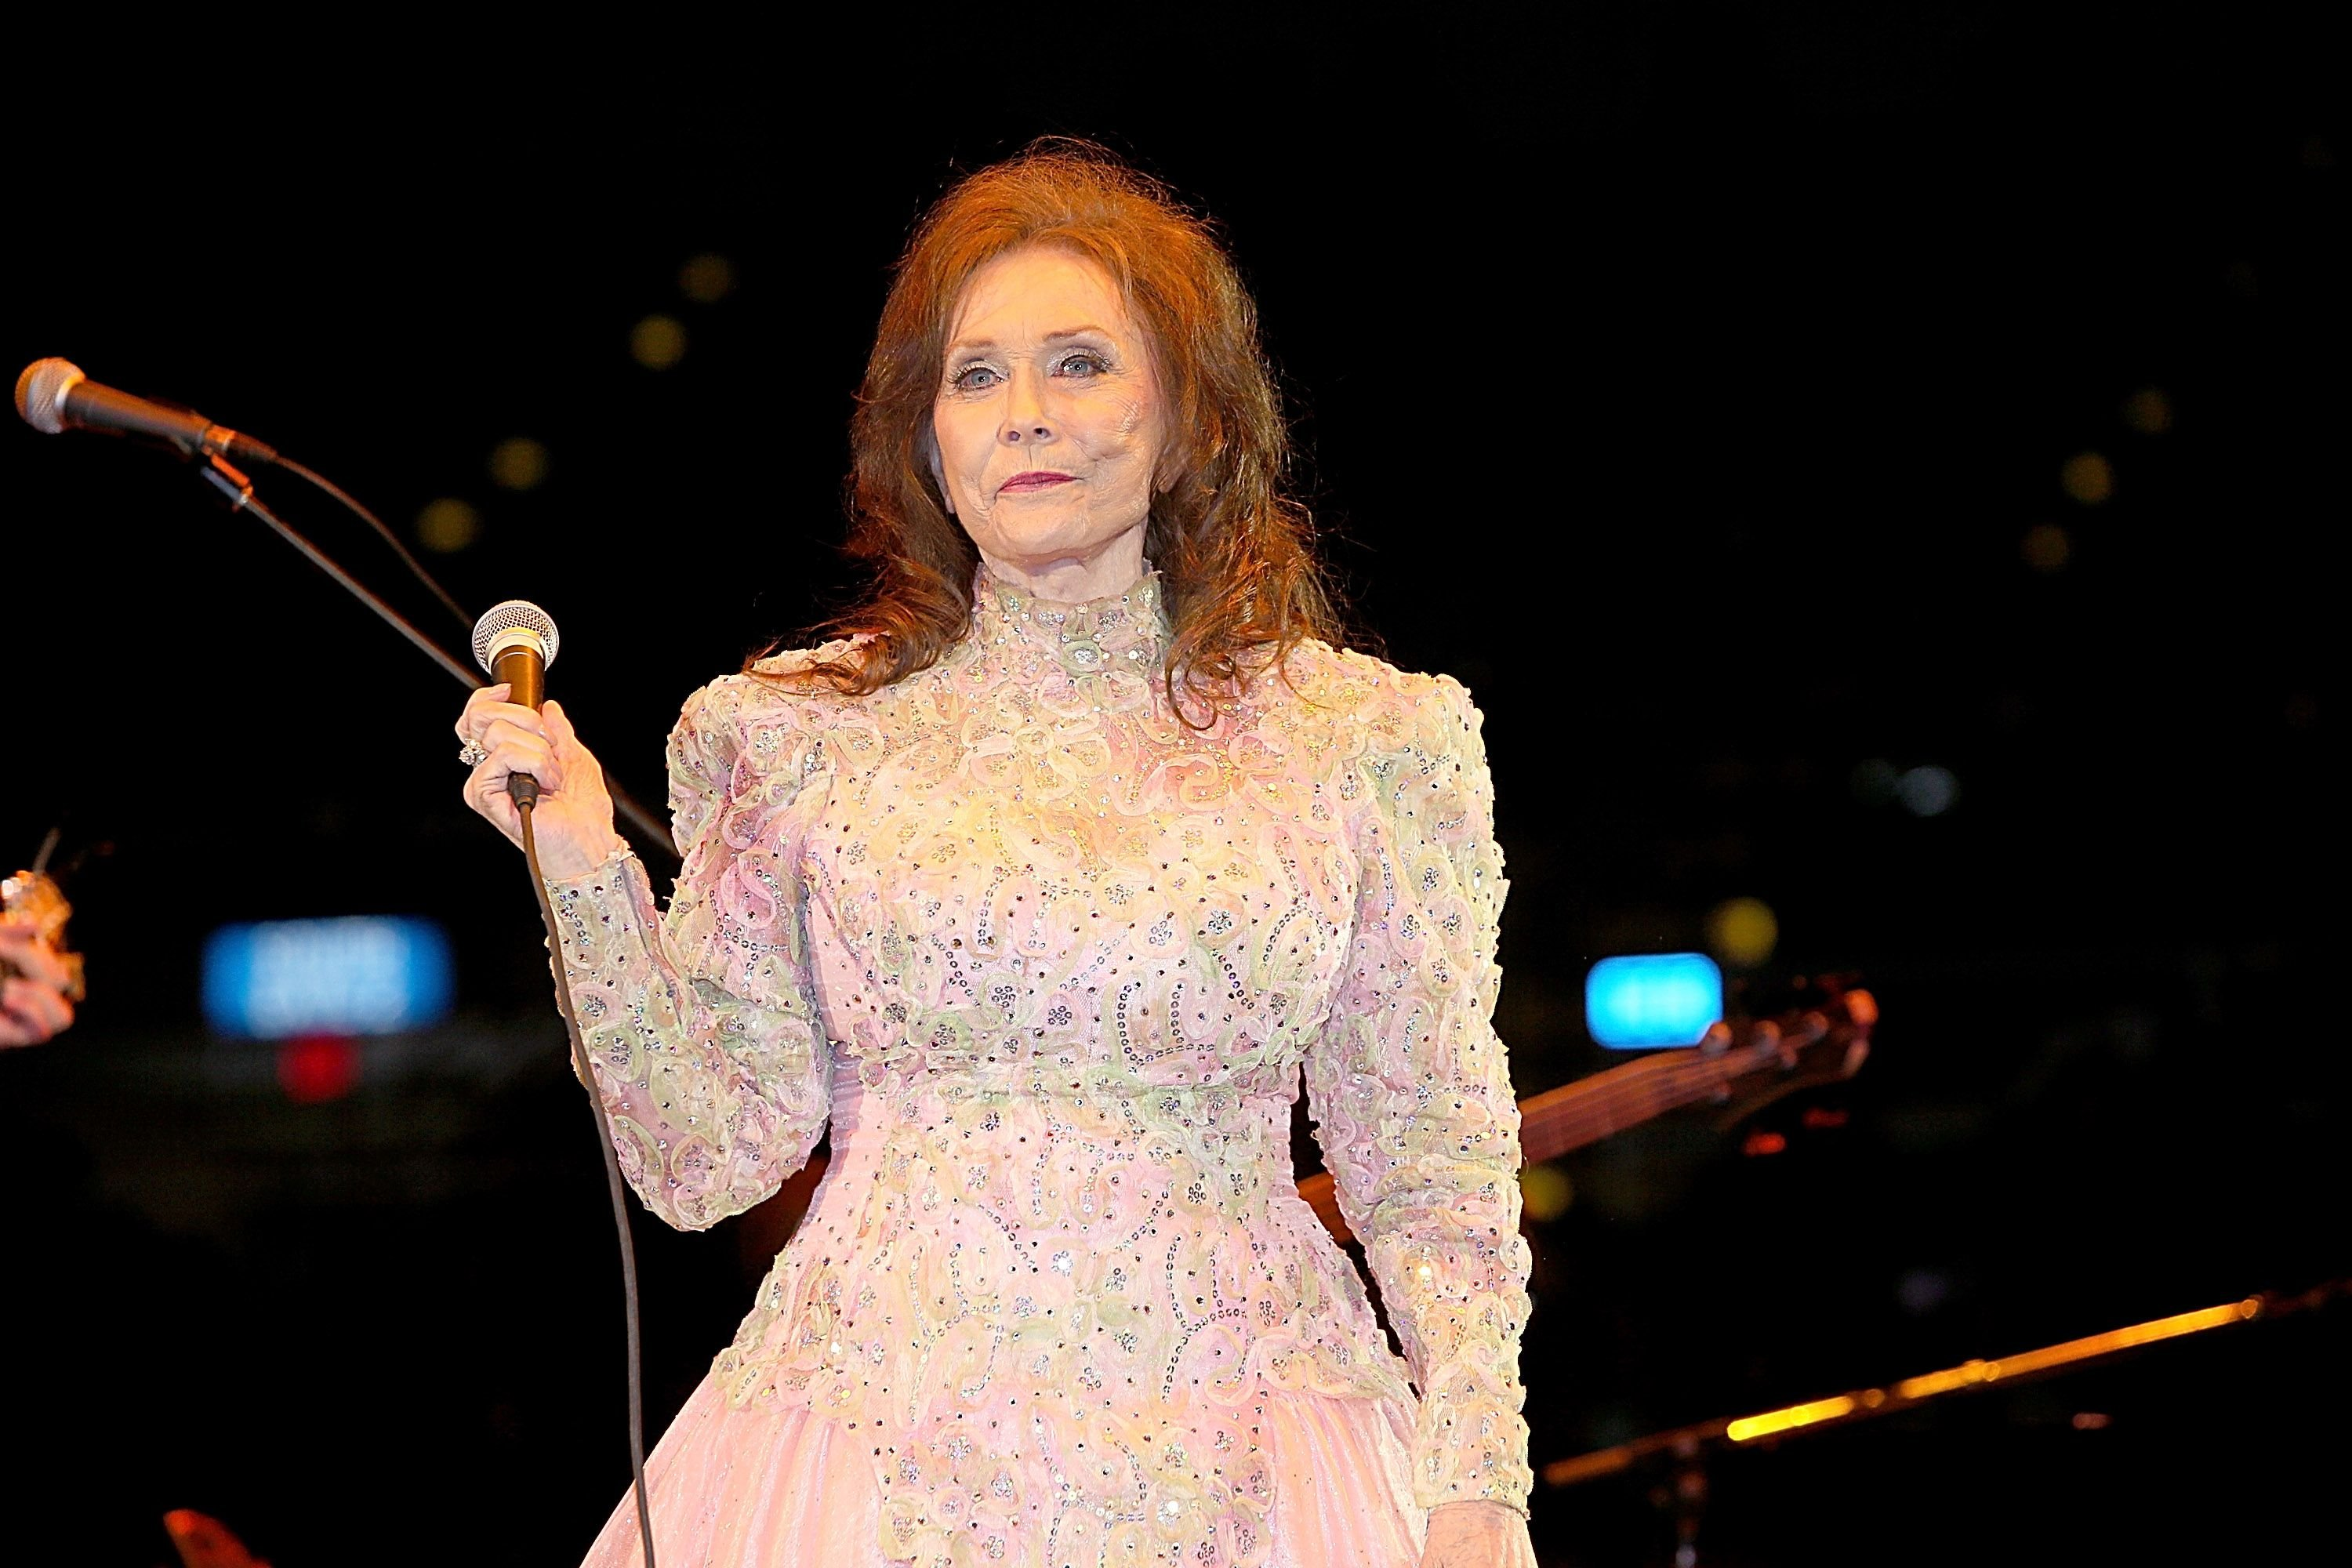 Loretta Lynn performs in concert during Rodeo Austin at the Travis County Expo Center on March 2, 2014 in Austin, Texas. | Source: Getty Images